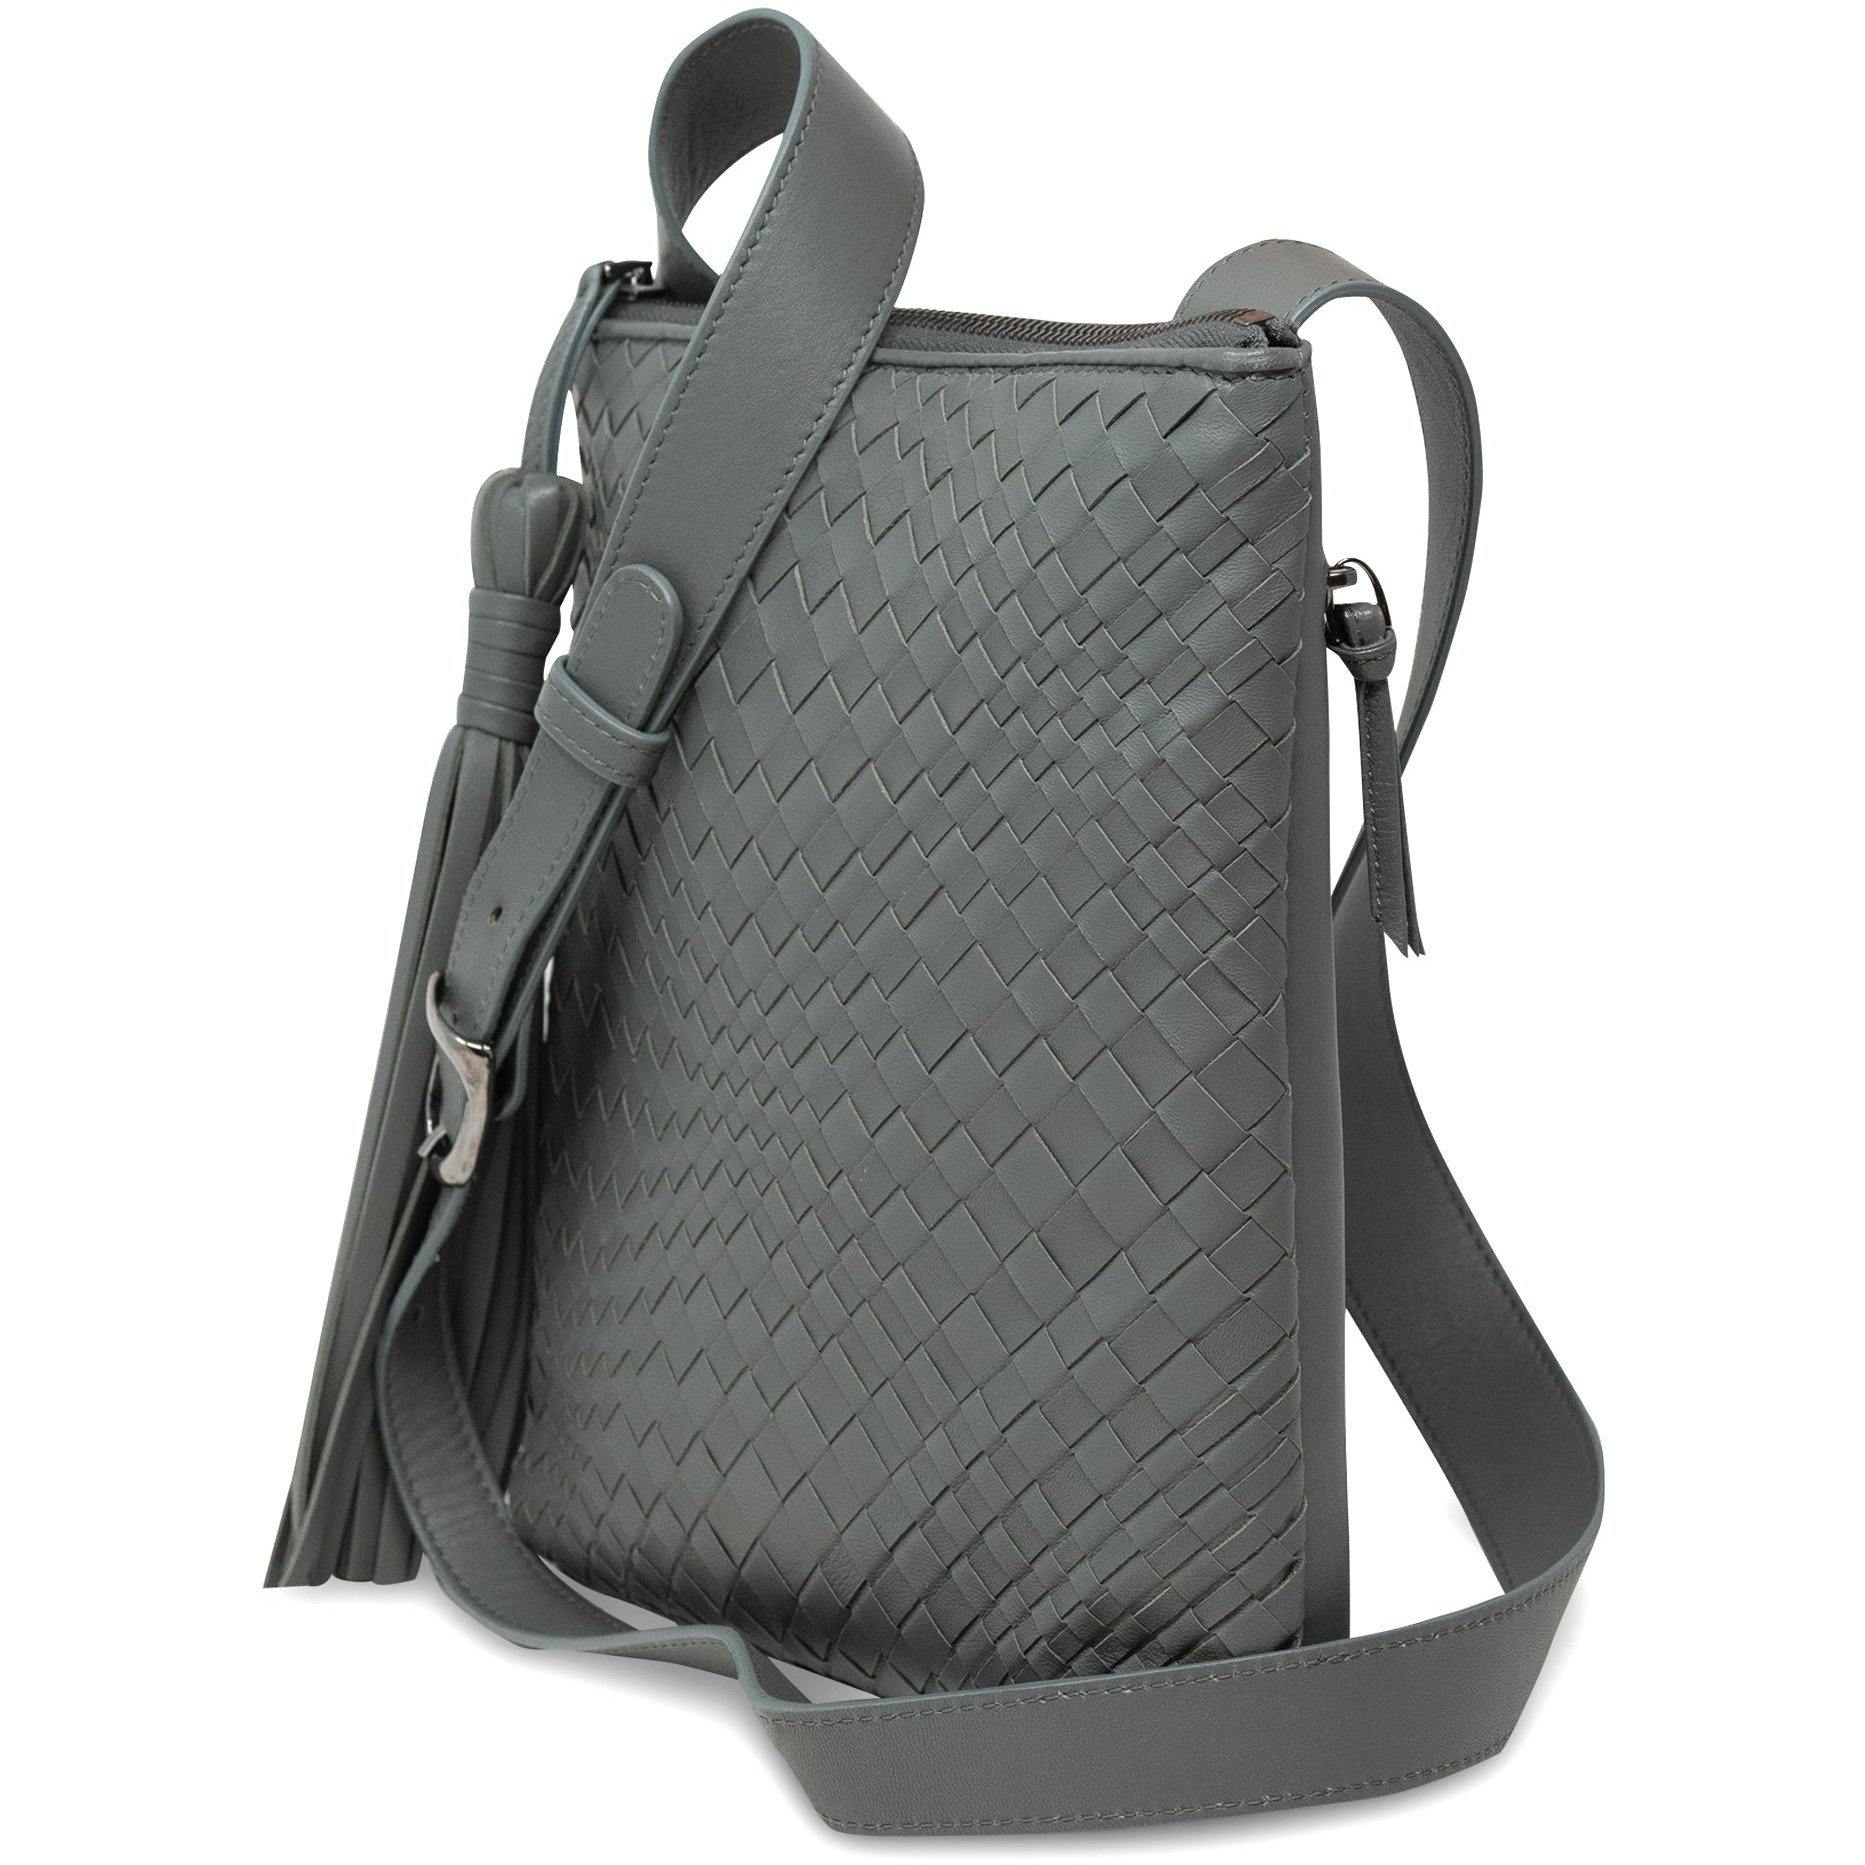 KIM Crossbody Women Bag Intrecciato Optical in Nappa Grey - Jennifer Tattanelli